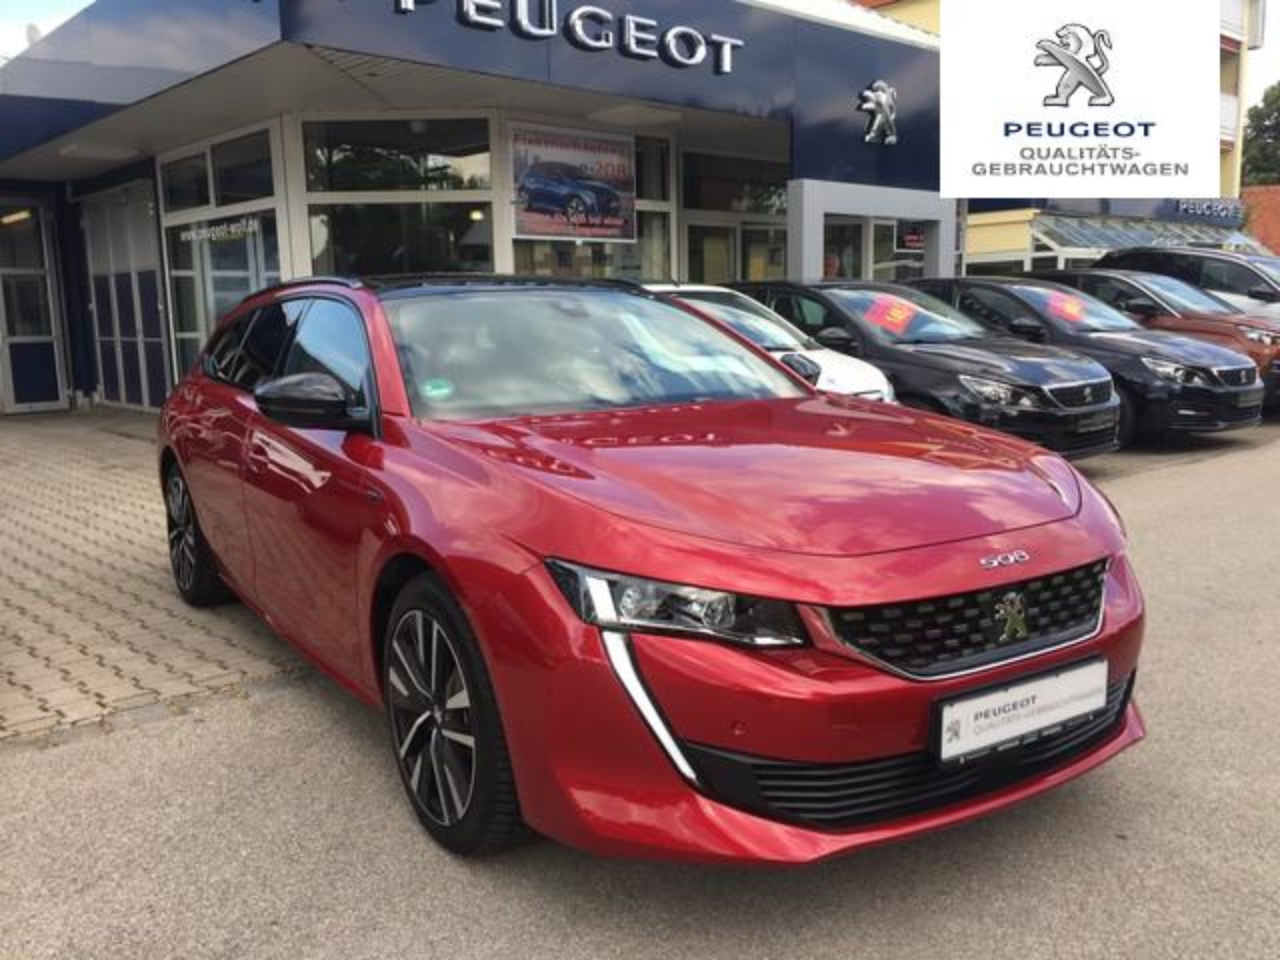 Peugeot 508 1.6 PureTech 225 SW GT Panorama*Night Vision*Focal